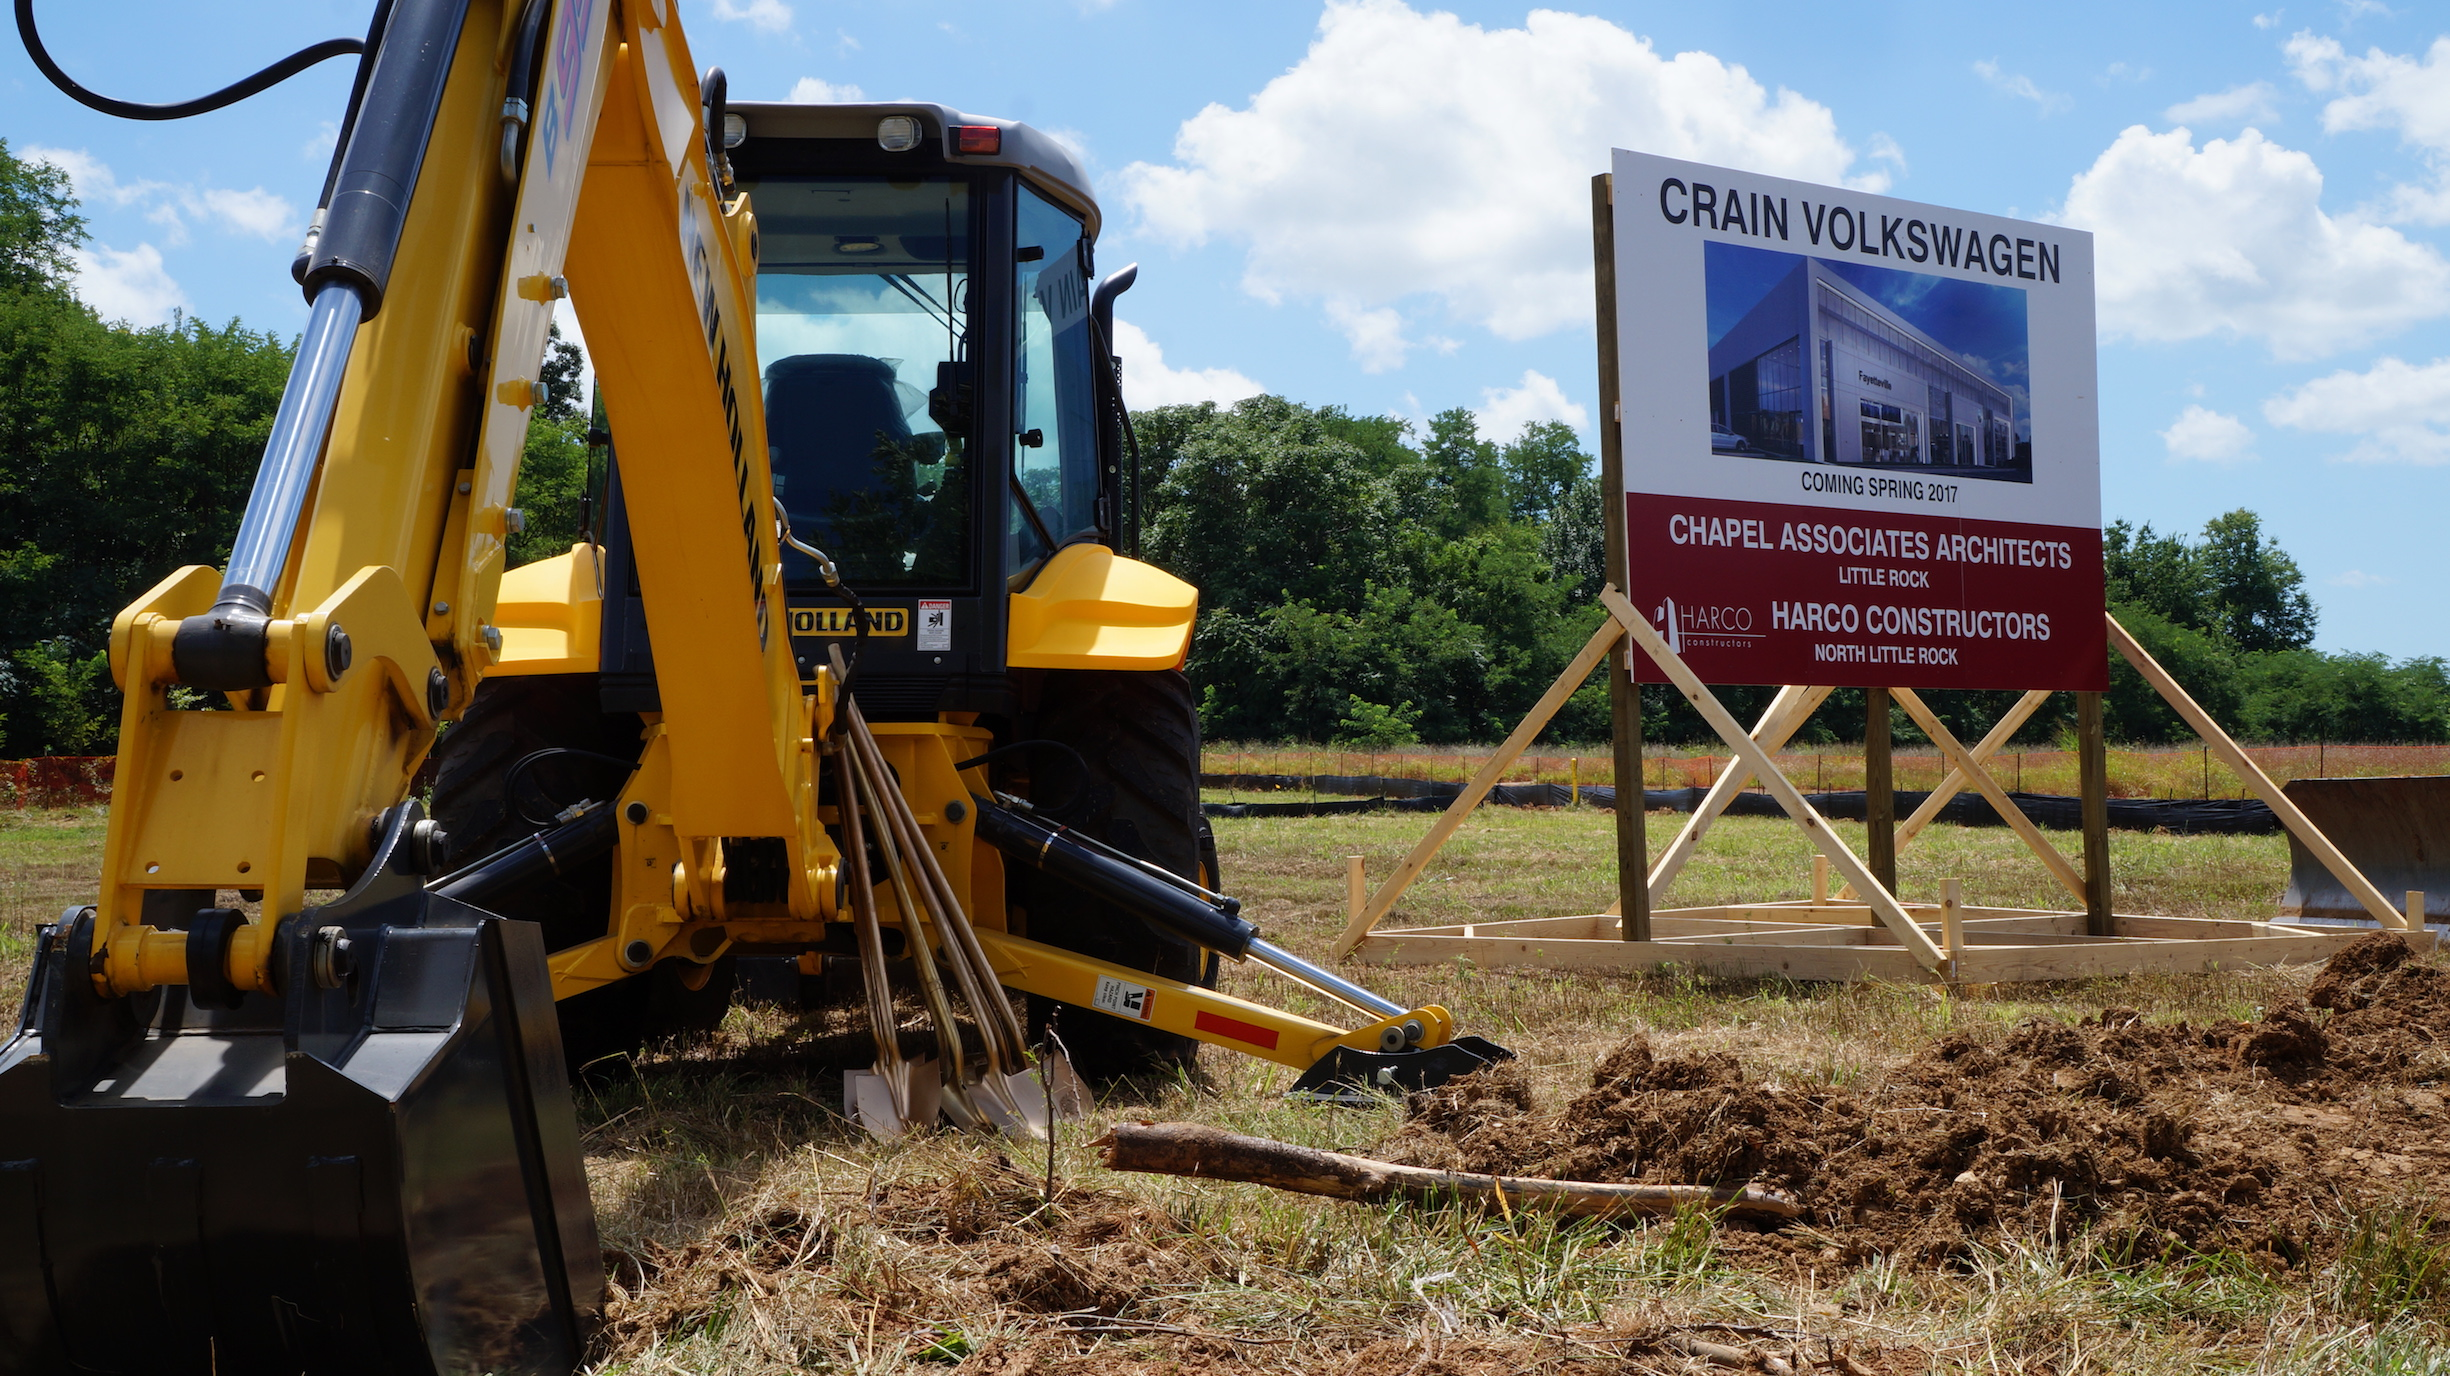 Crain Gmc Conway >> Crain VW Fayetteville Groundbreaking | Harco Full Service General Contractors Arkansas